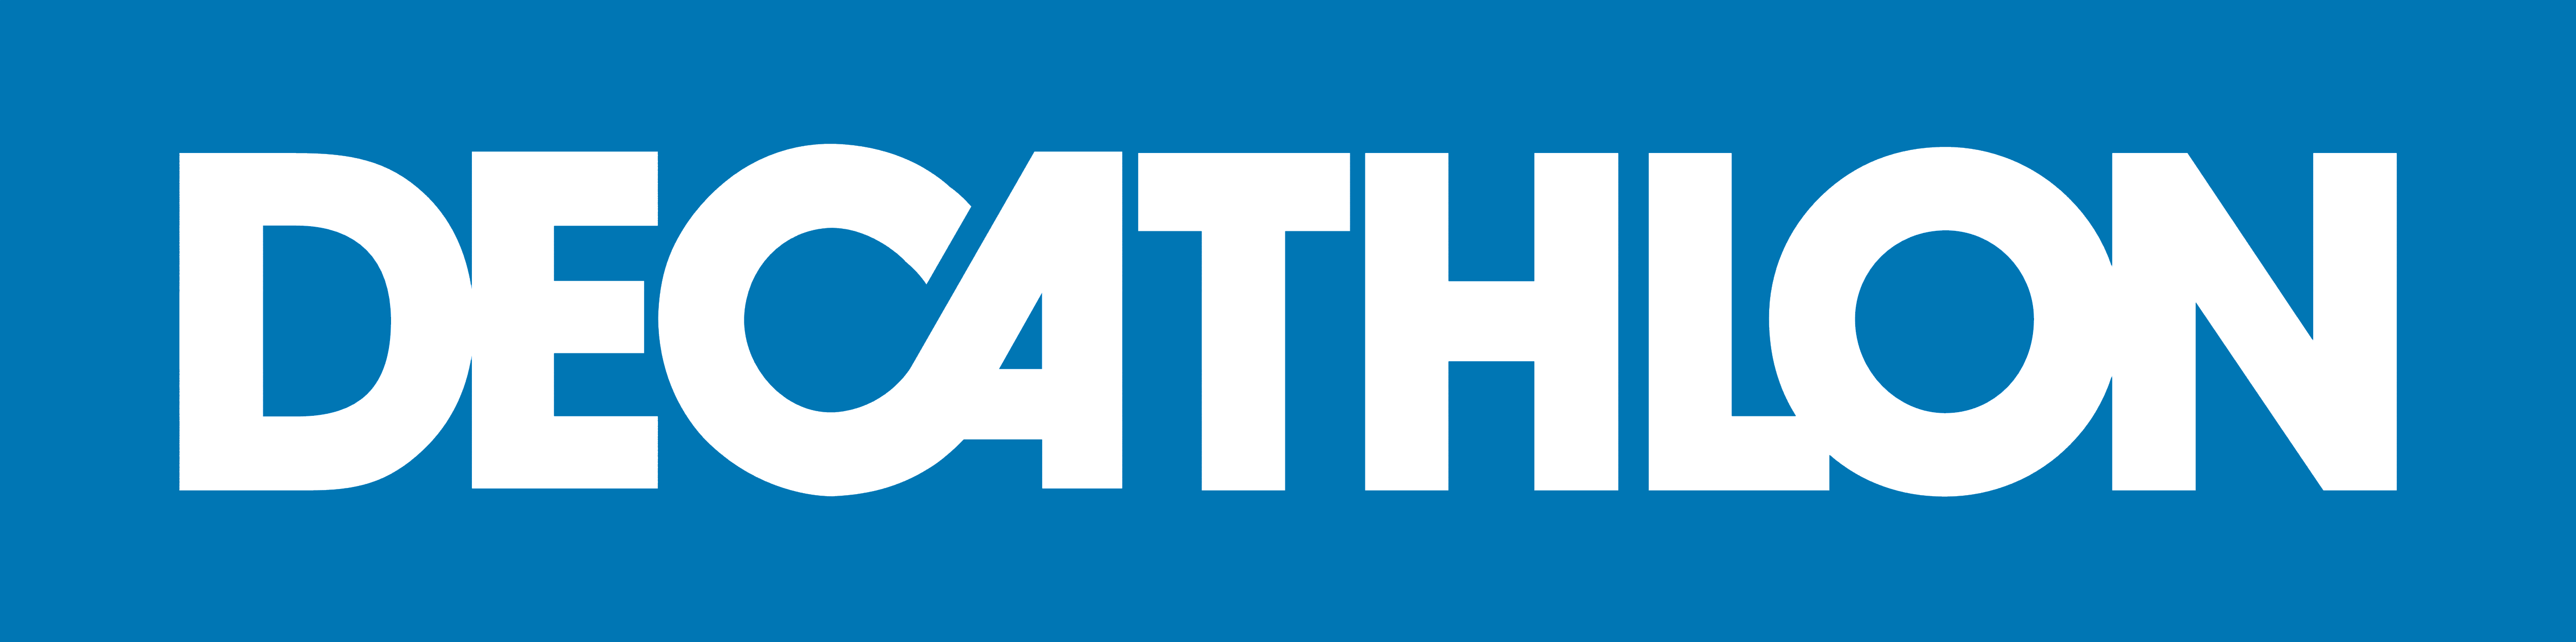 Decathlon logó